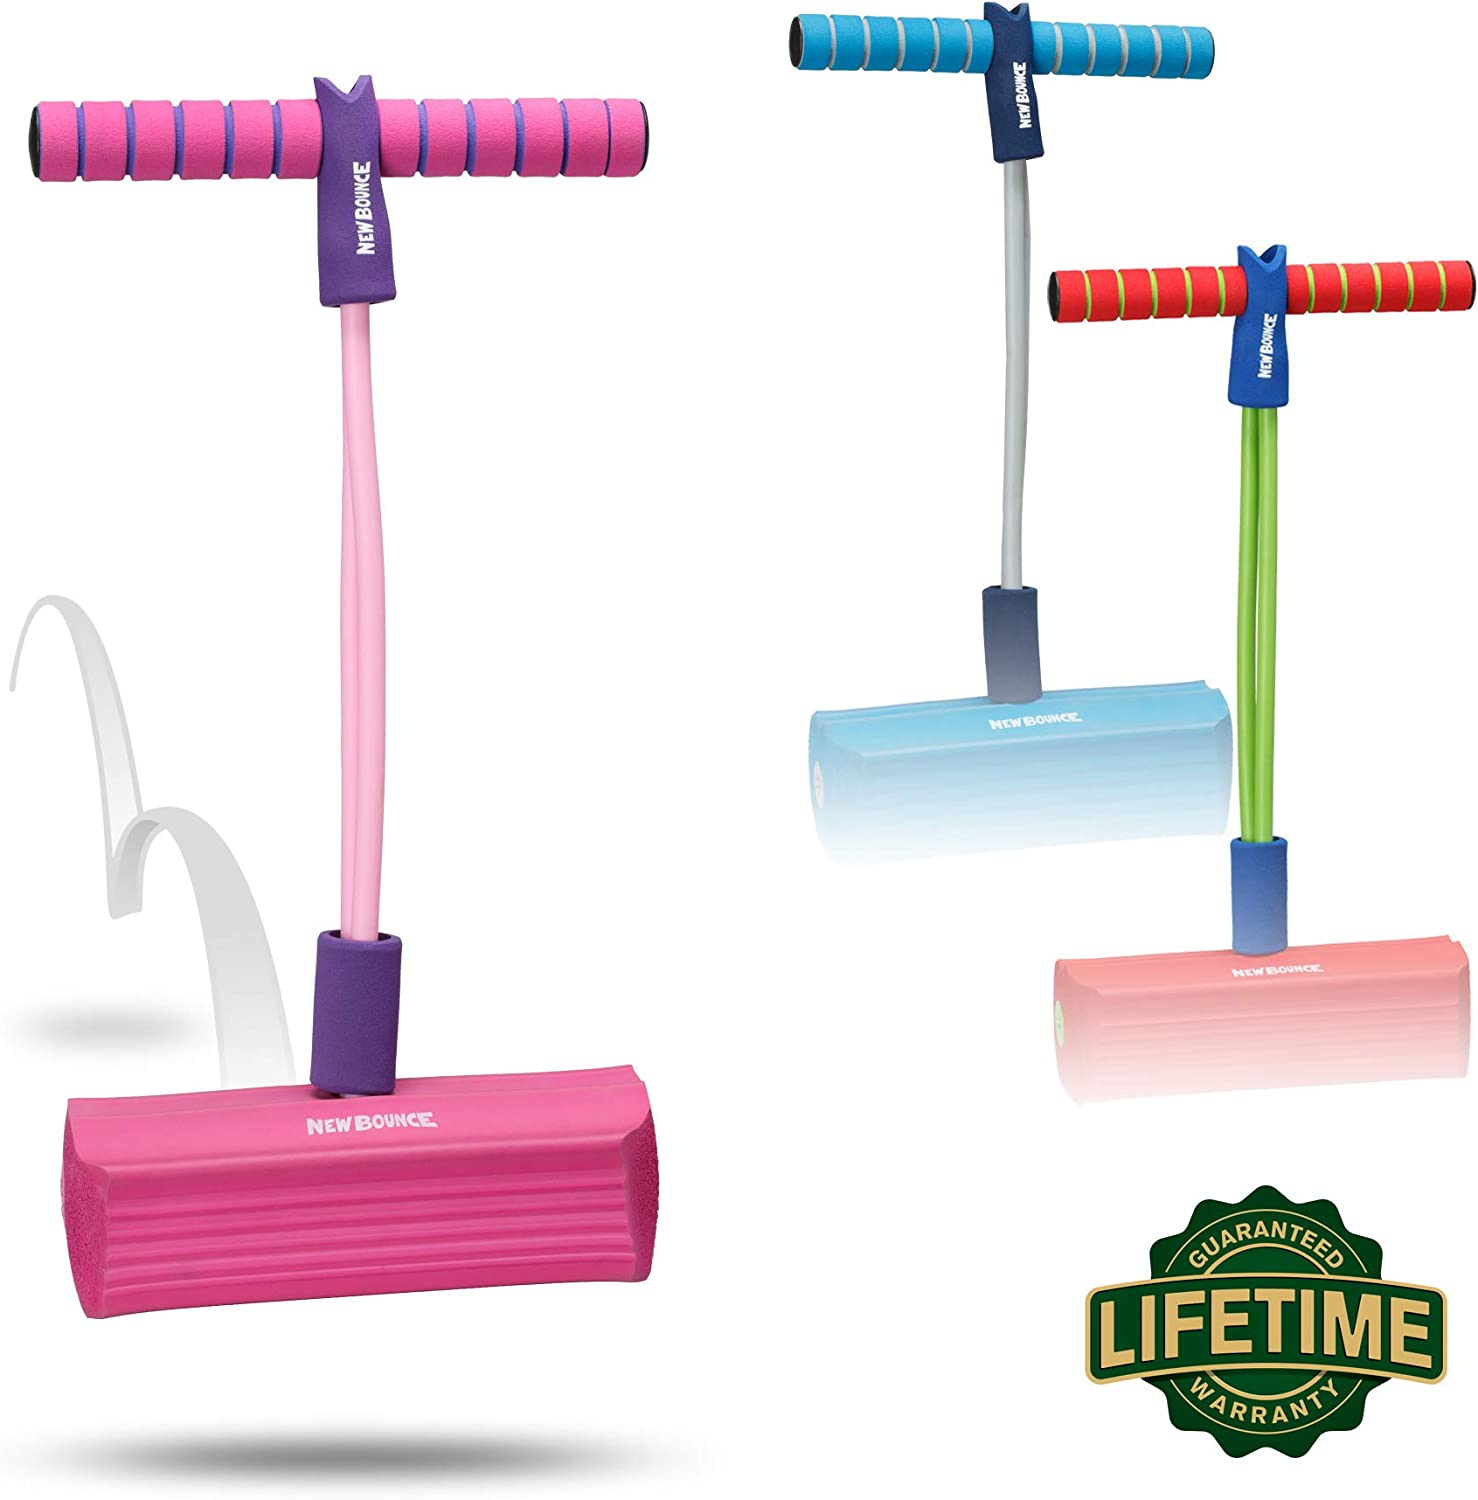 an image of bouncy pogo sticks in blue, pink and red colors.